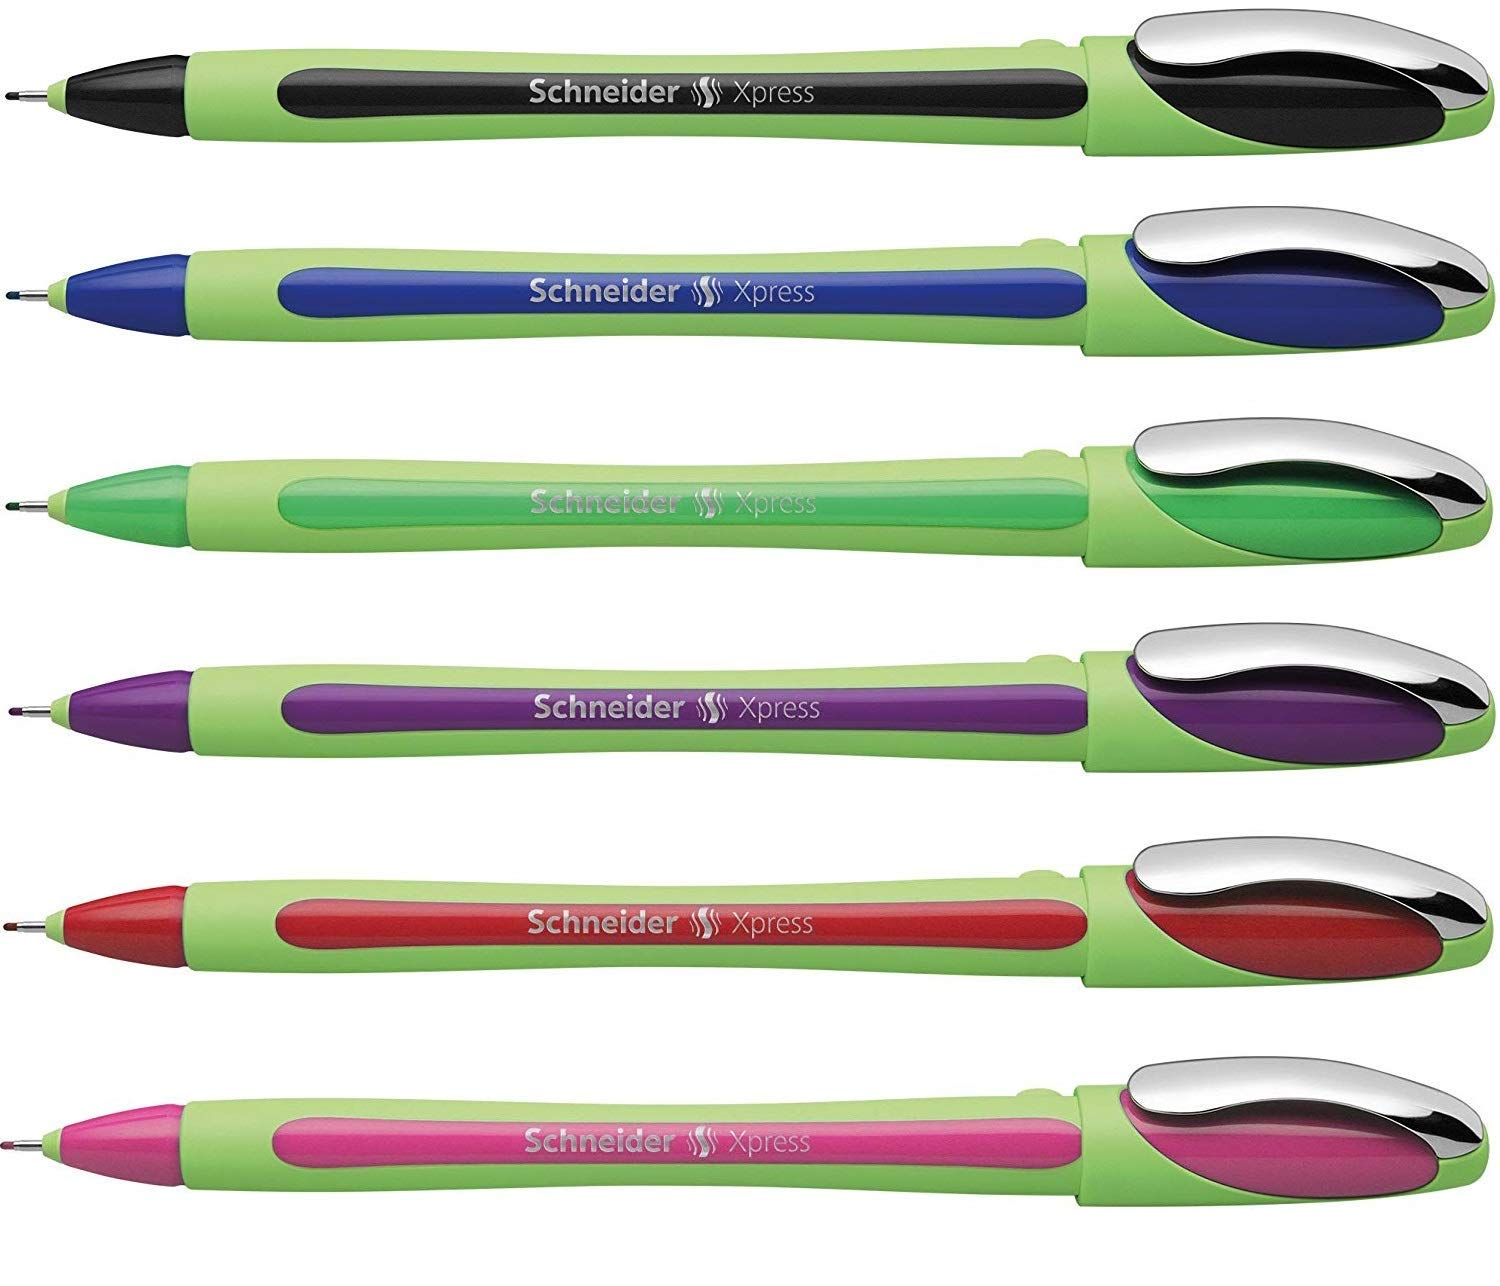 Schneider Xpress Fineliner 0.8mm Comfy Grip Waterproof Black